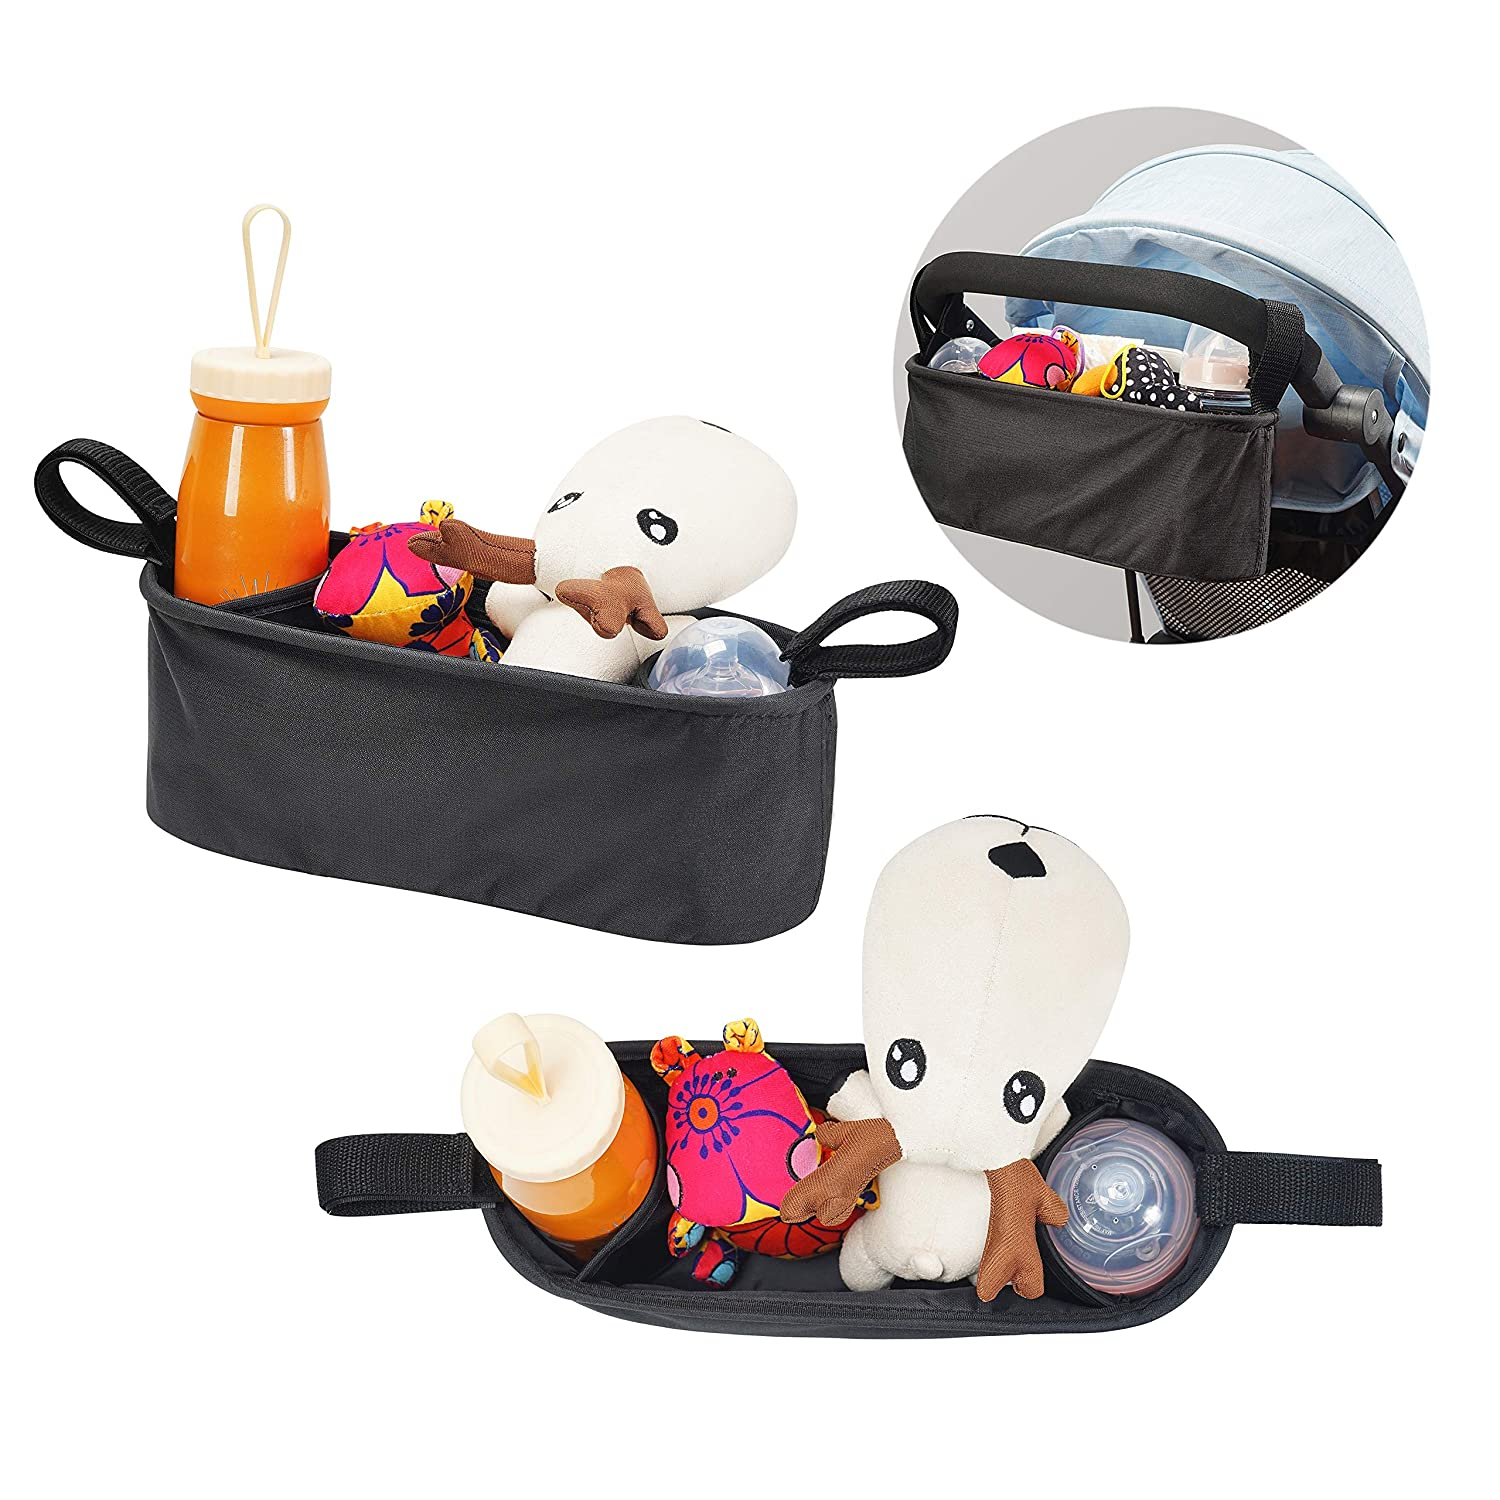 Pram Buggy Organiser Stroller Pushchair Storage Bag Diaper Changing Pad 2-in-1 with Multi-Pockets Cup Holders Foldable Storage Toys Diaper Bottles for Baby Infant